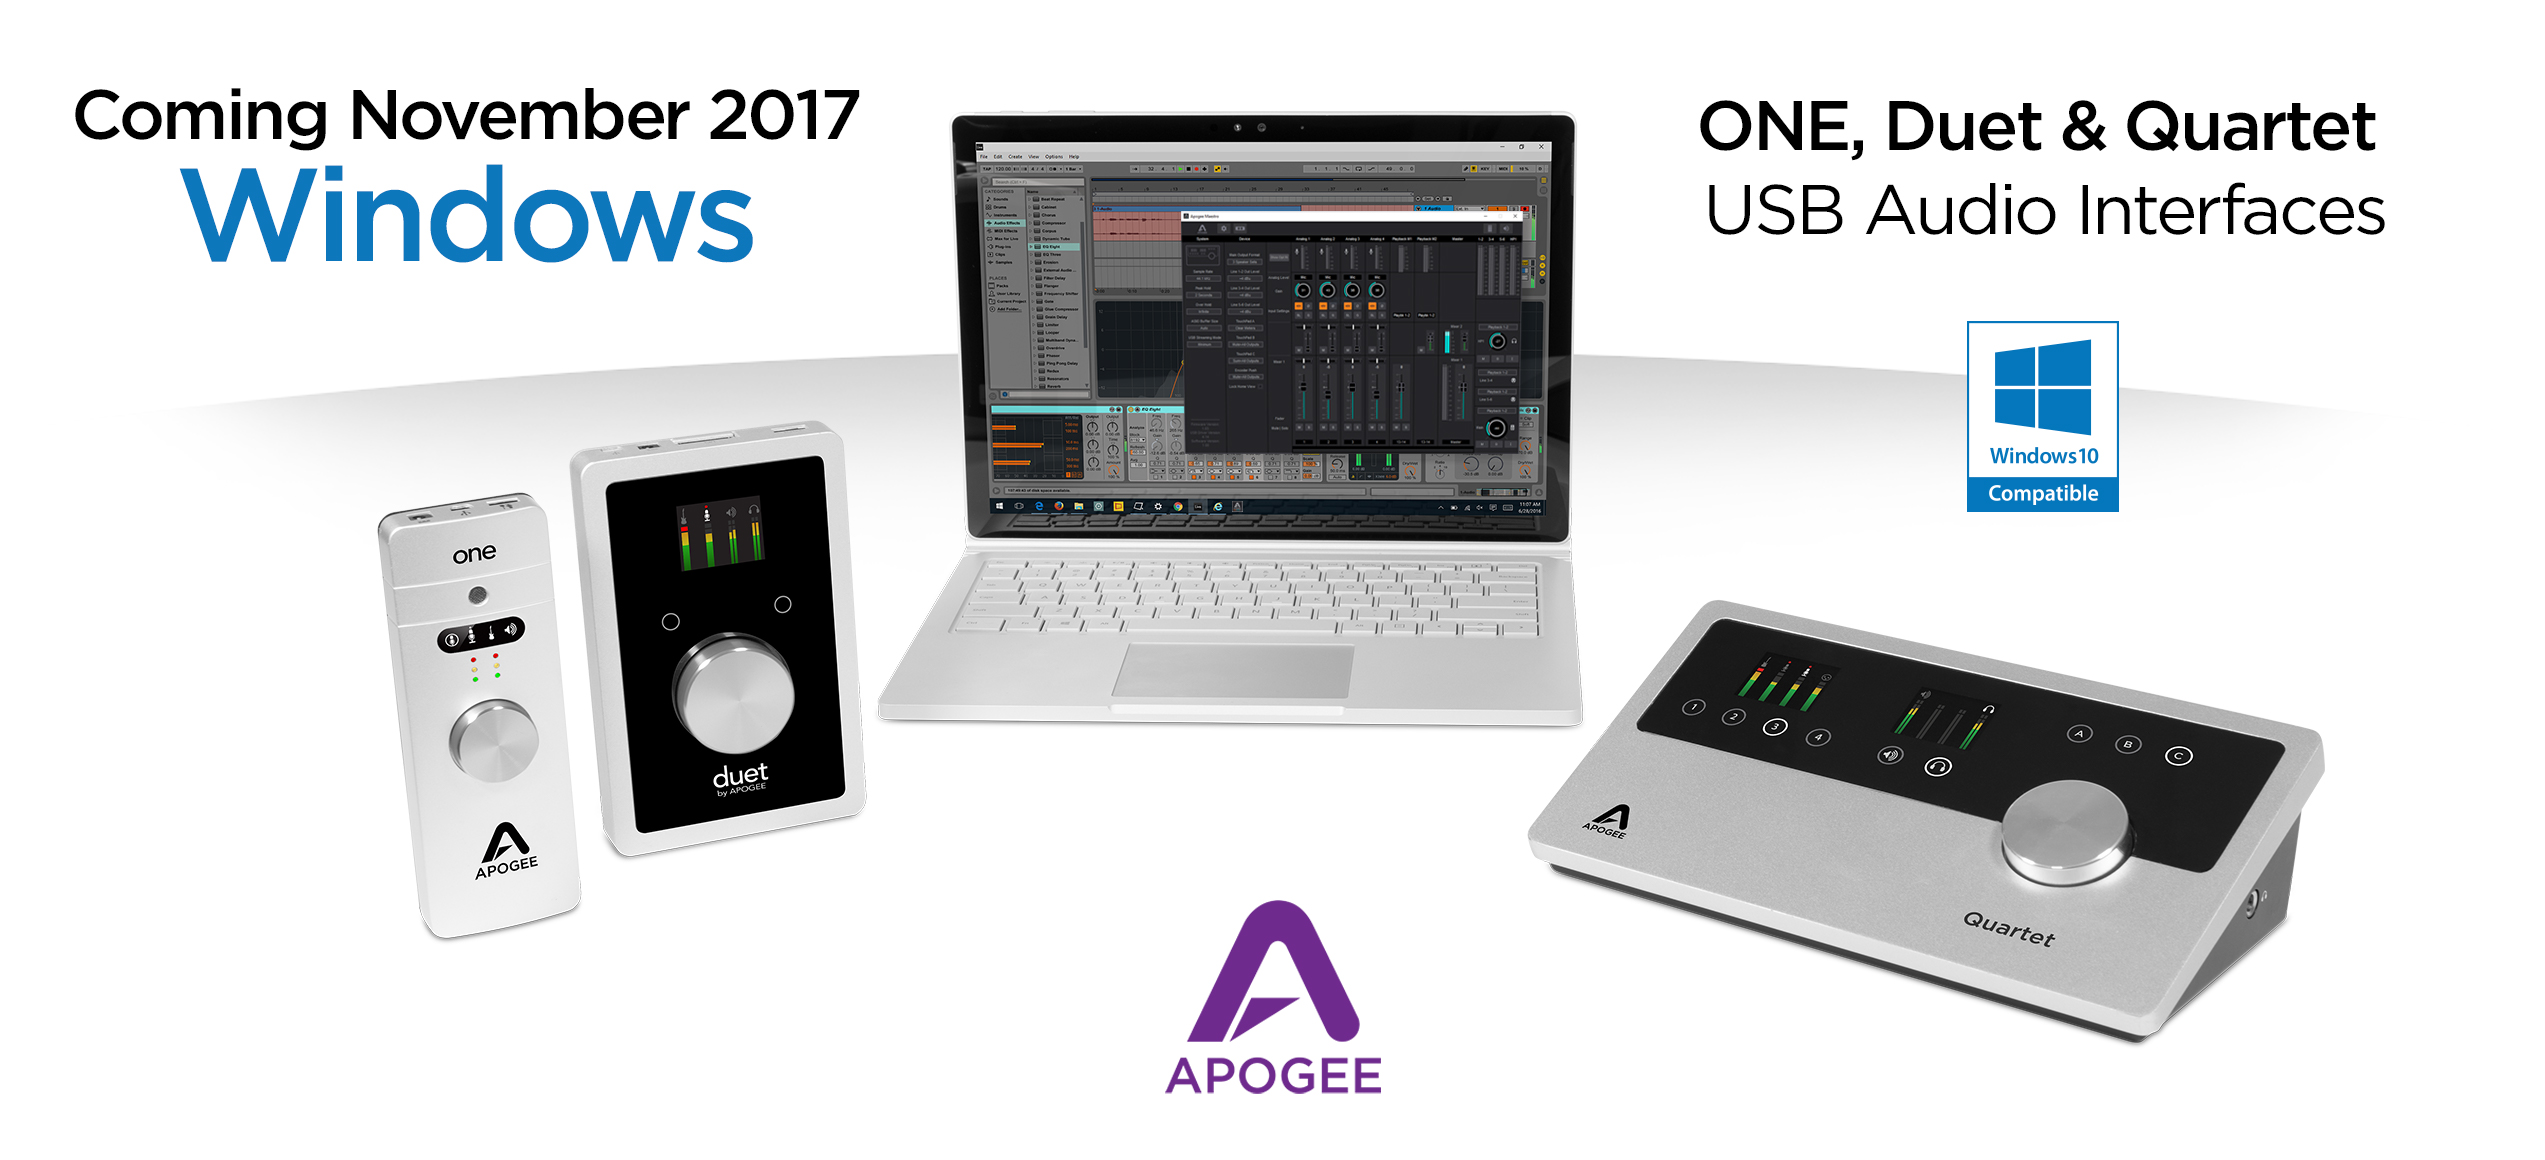 20171010_apogee_windows-announcement-feature-coming